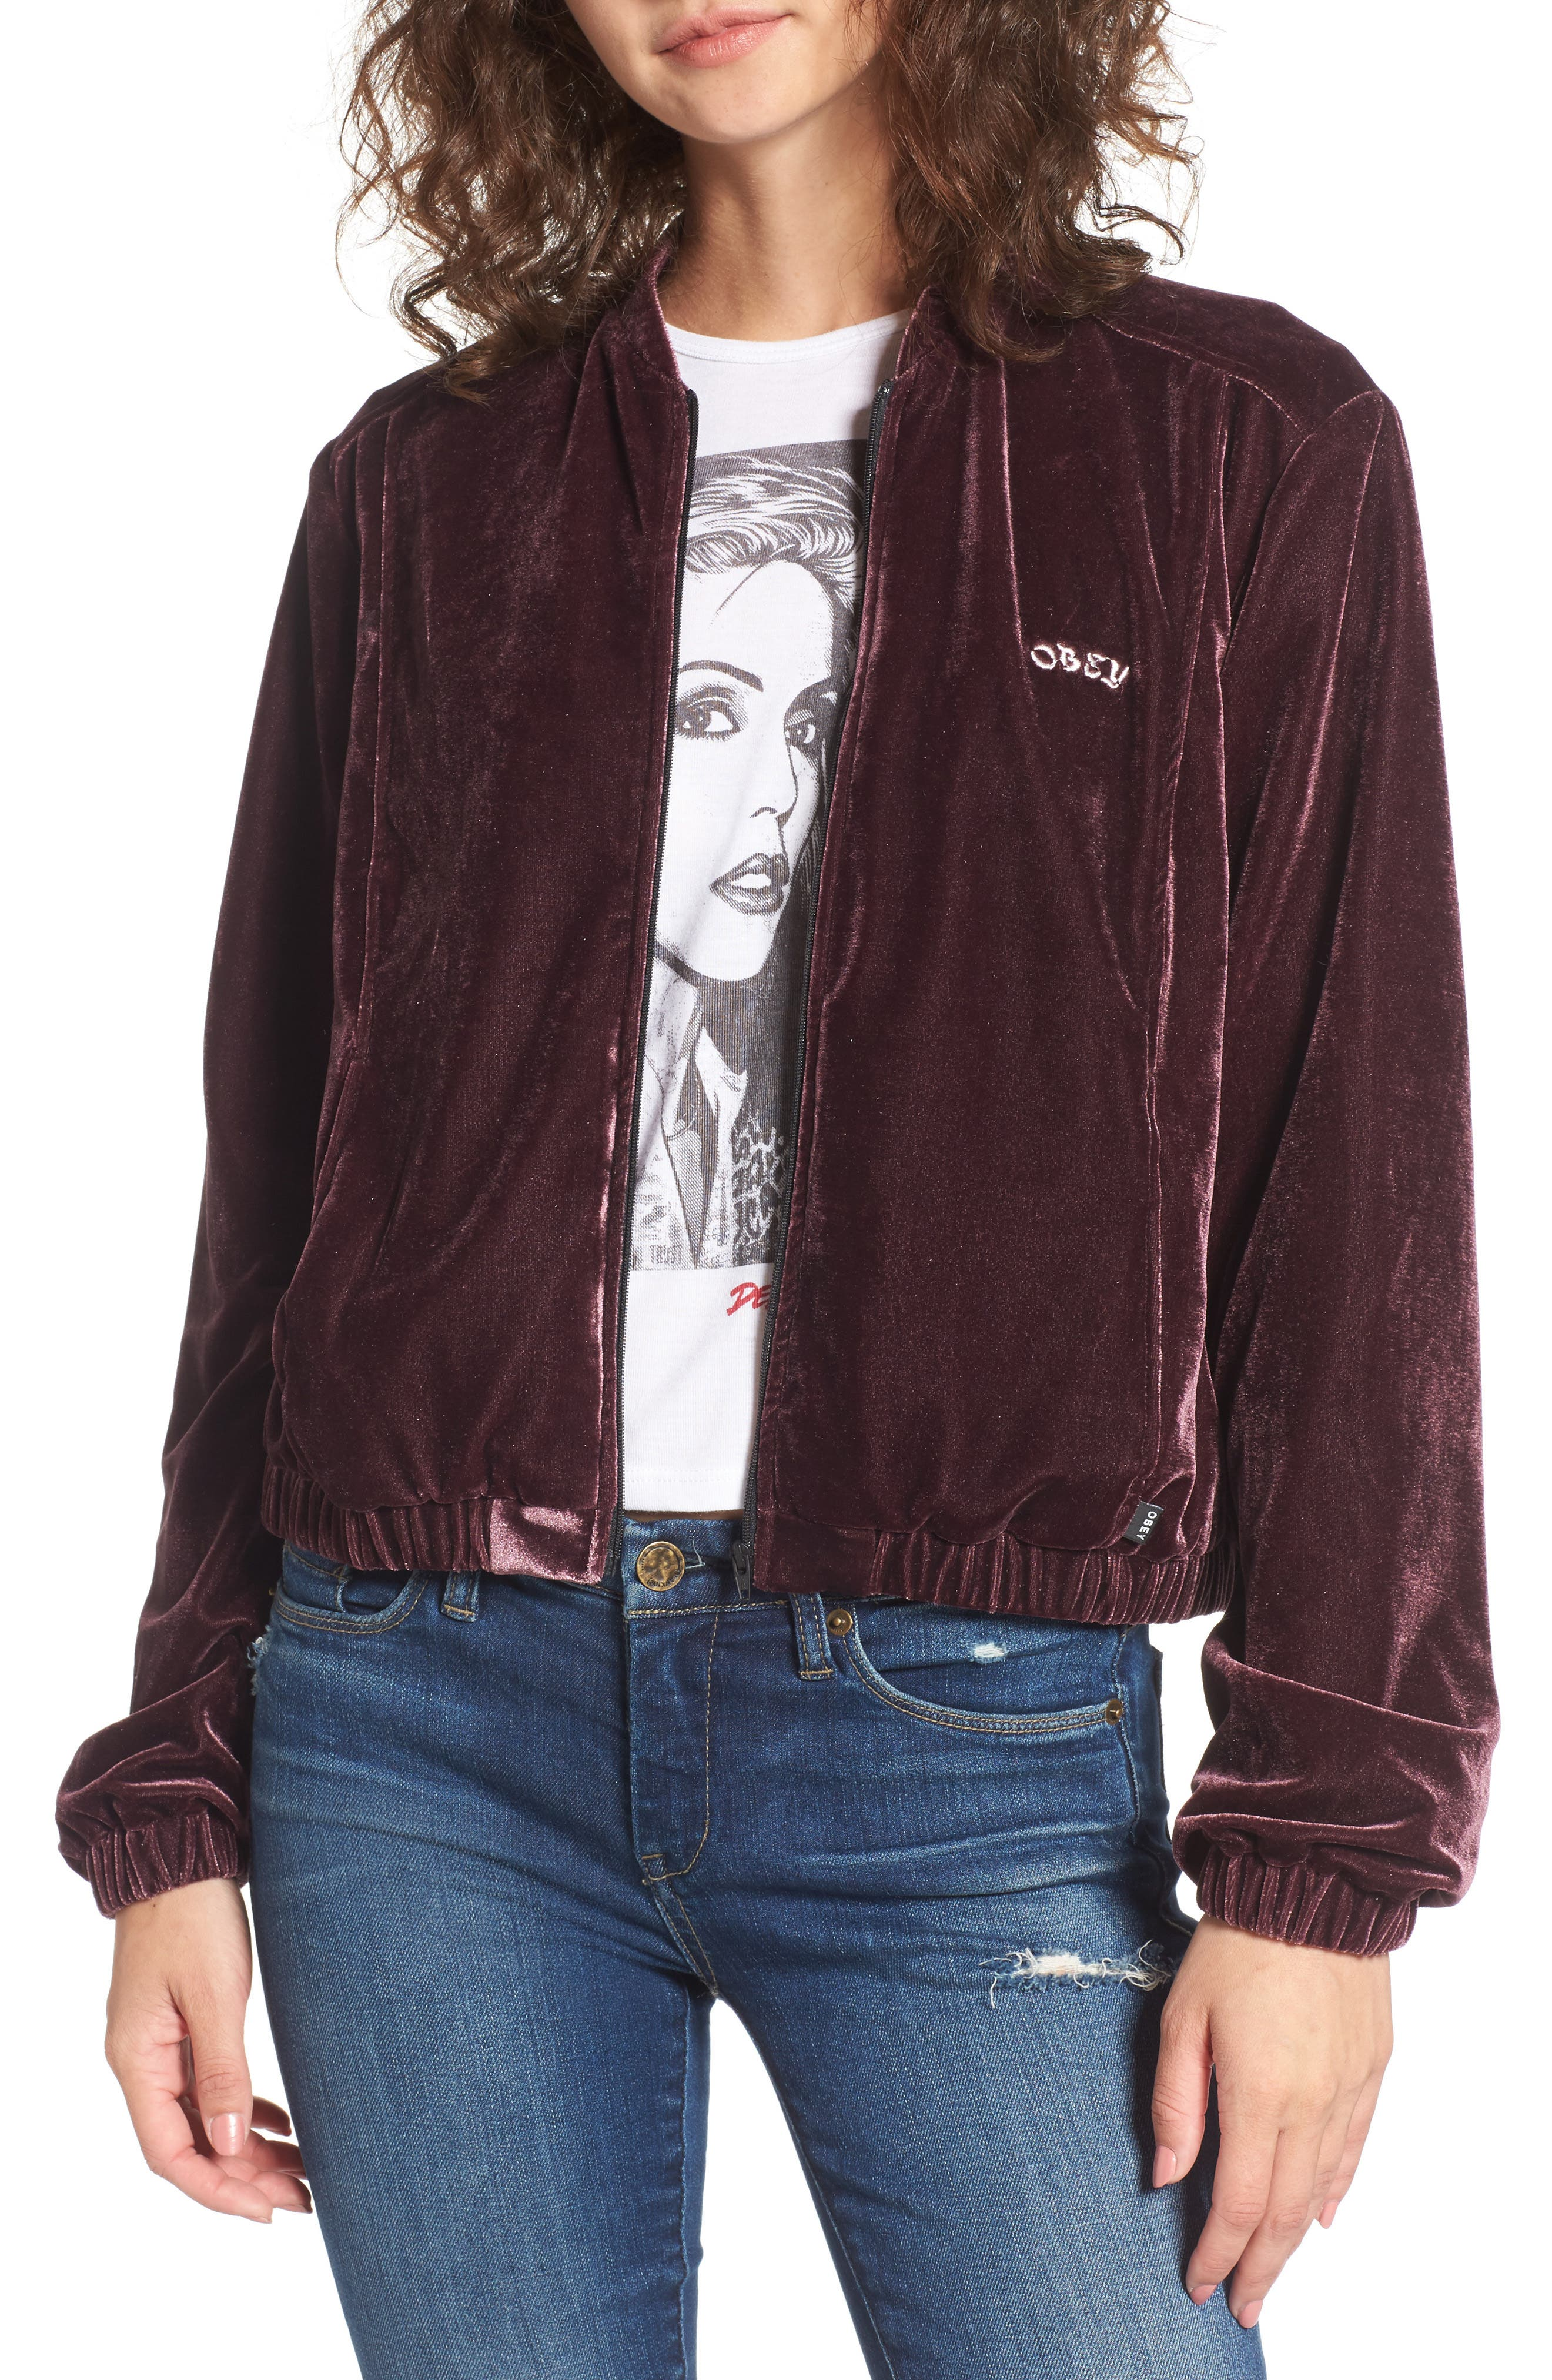 Obey Sabre Embroidered Velvet Jacket